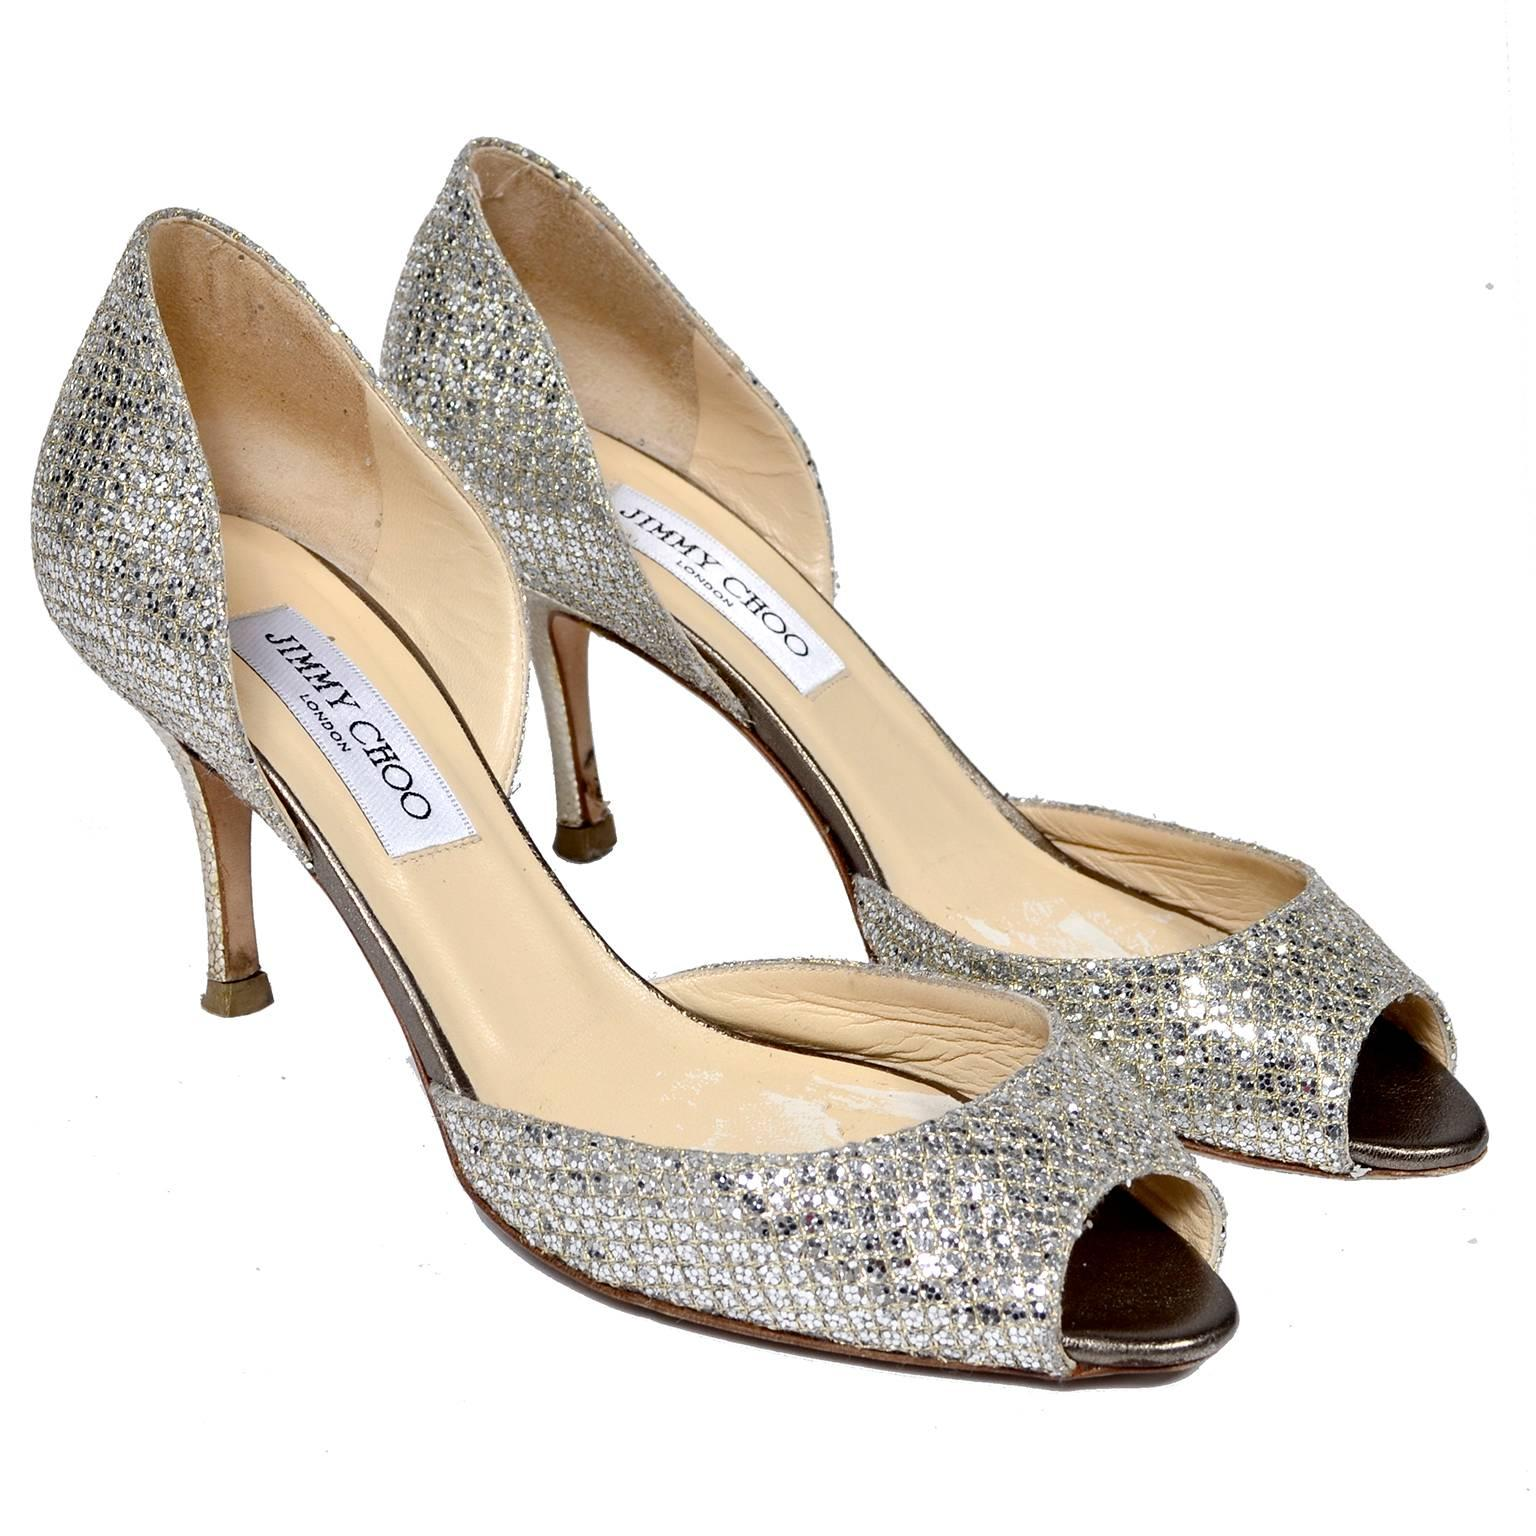 jimmy choo shoes d orsay pumps in glitter champagne size 37 5 w box rh 1stdibs com